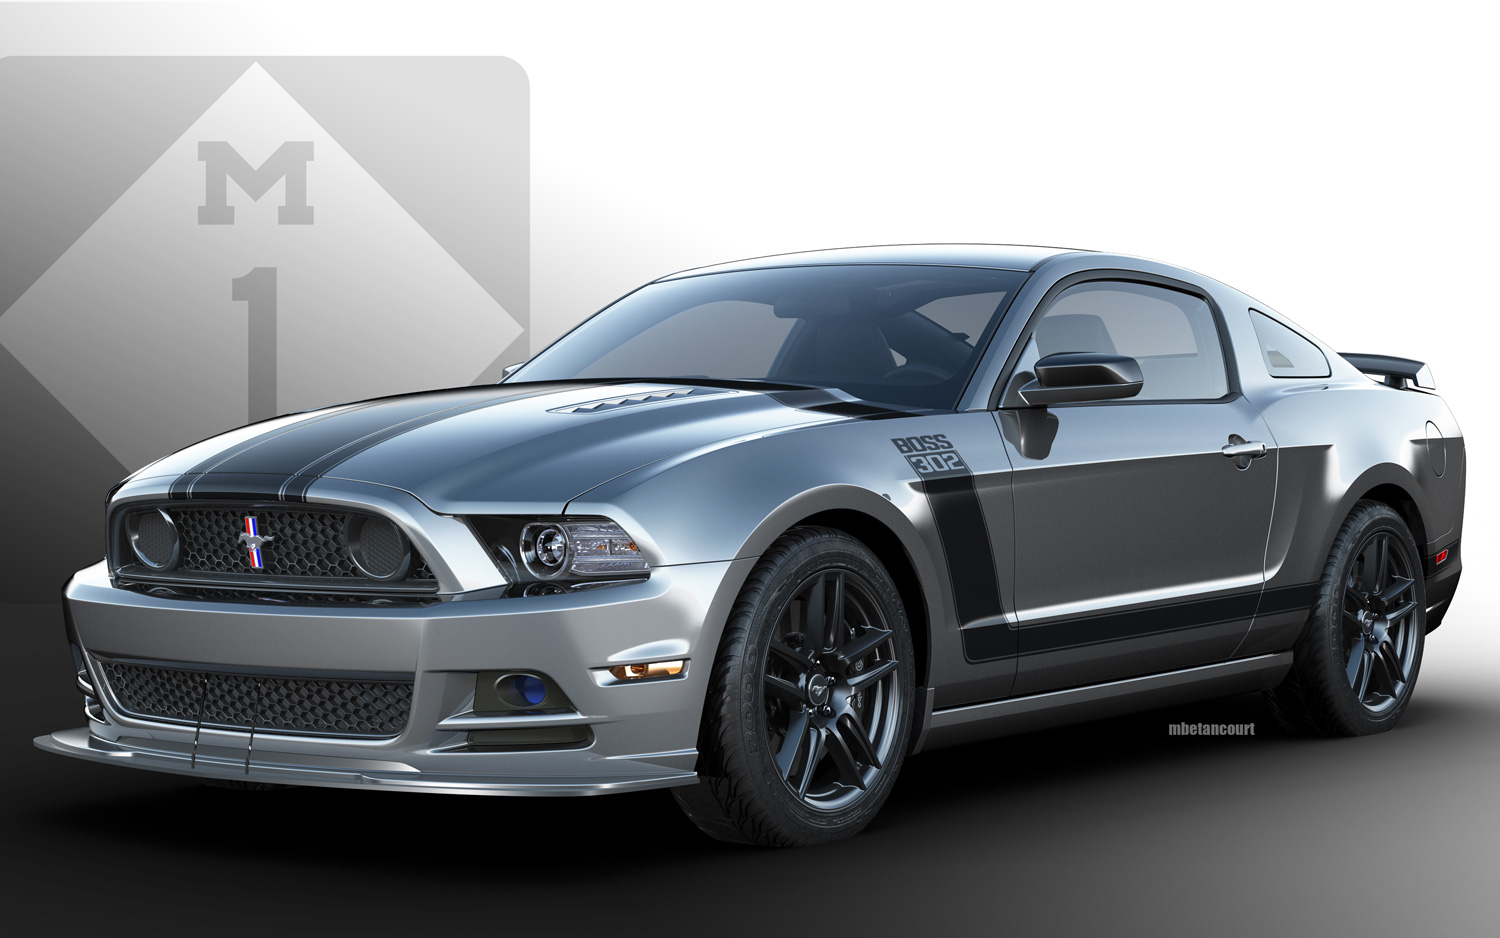 Raffle tickets for customized 2013 ford mustang boss 302 benefit